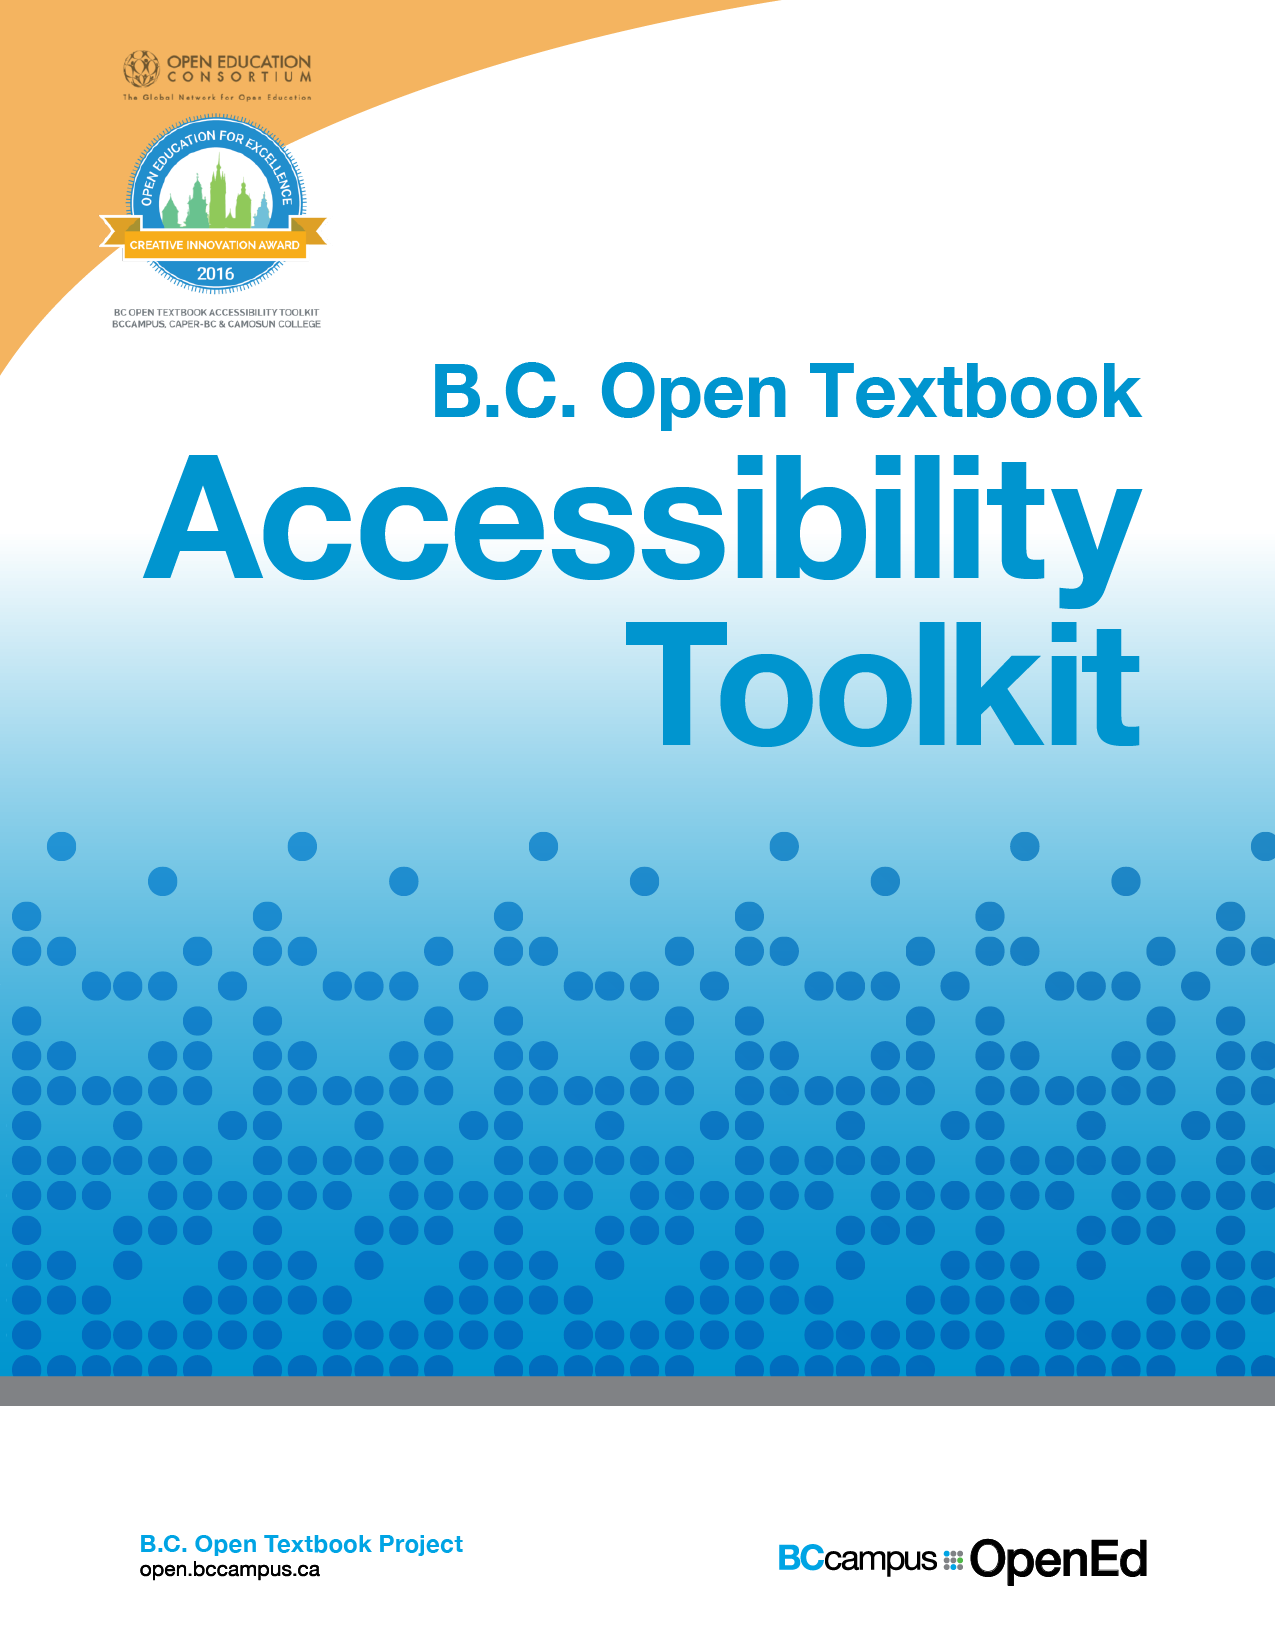 files/images/B.C.-OT-Accessibility-Toolkit-update-2016-v1-01.png